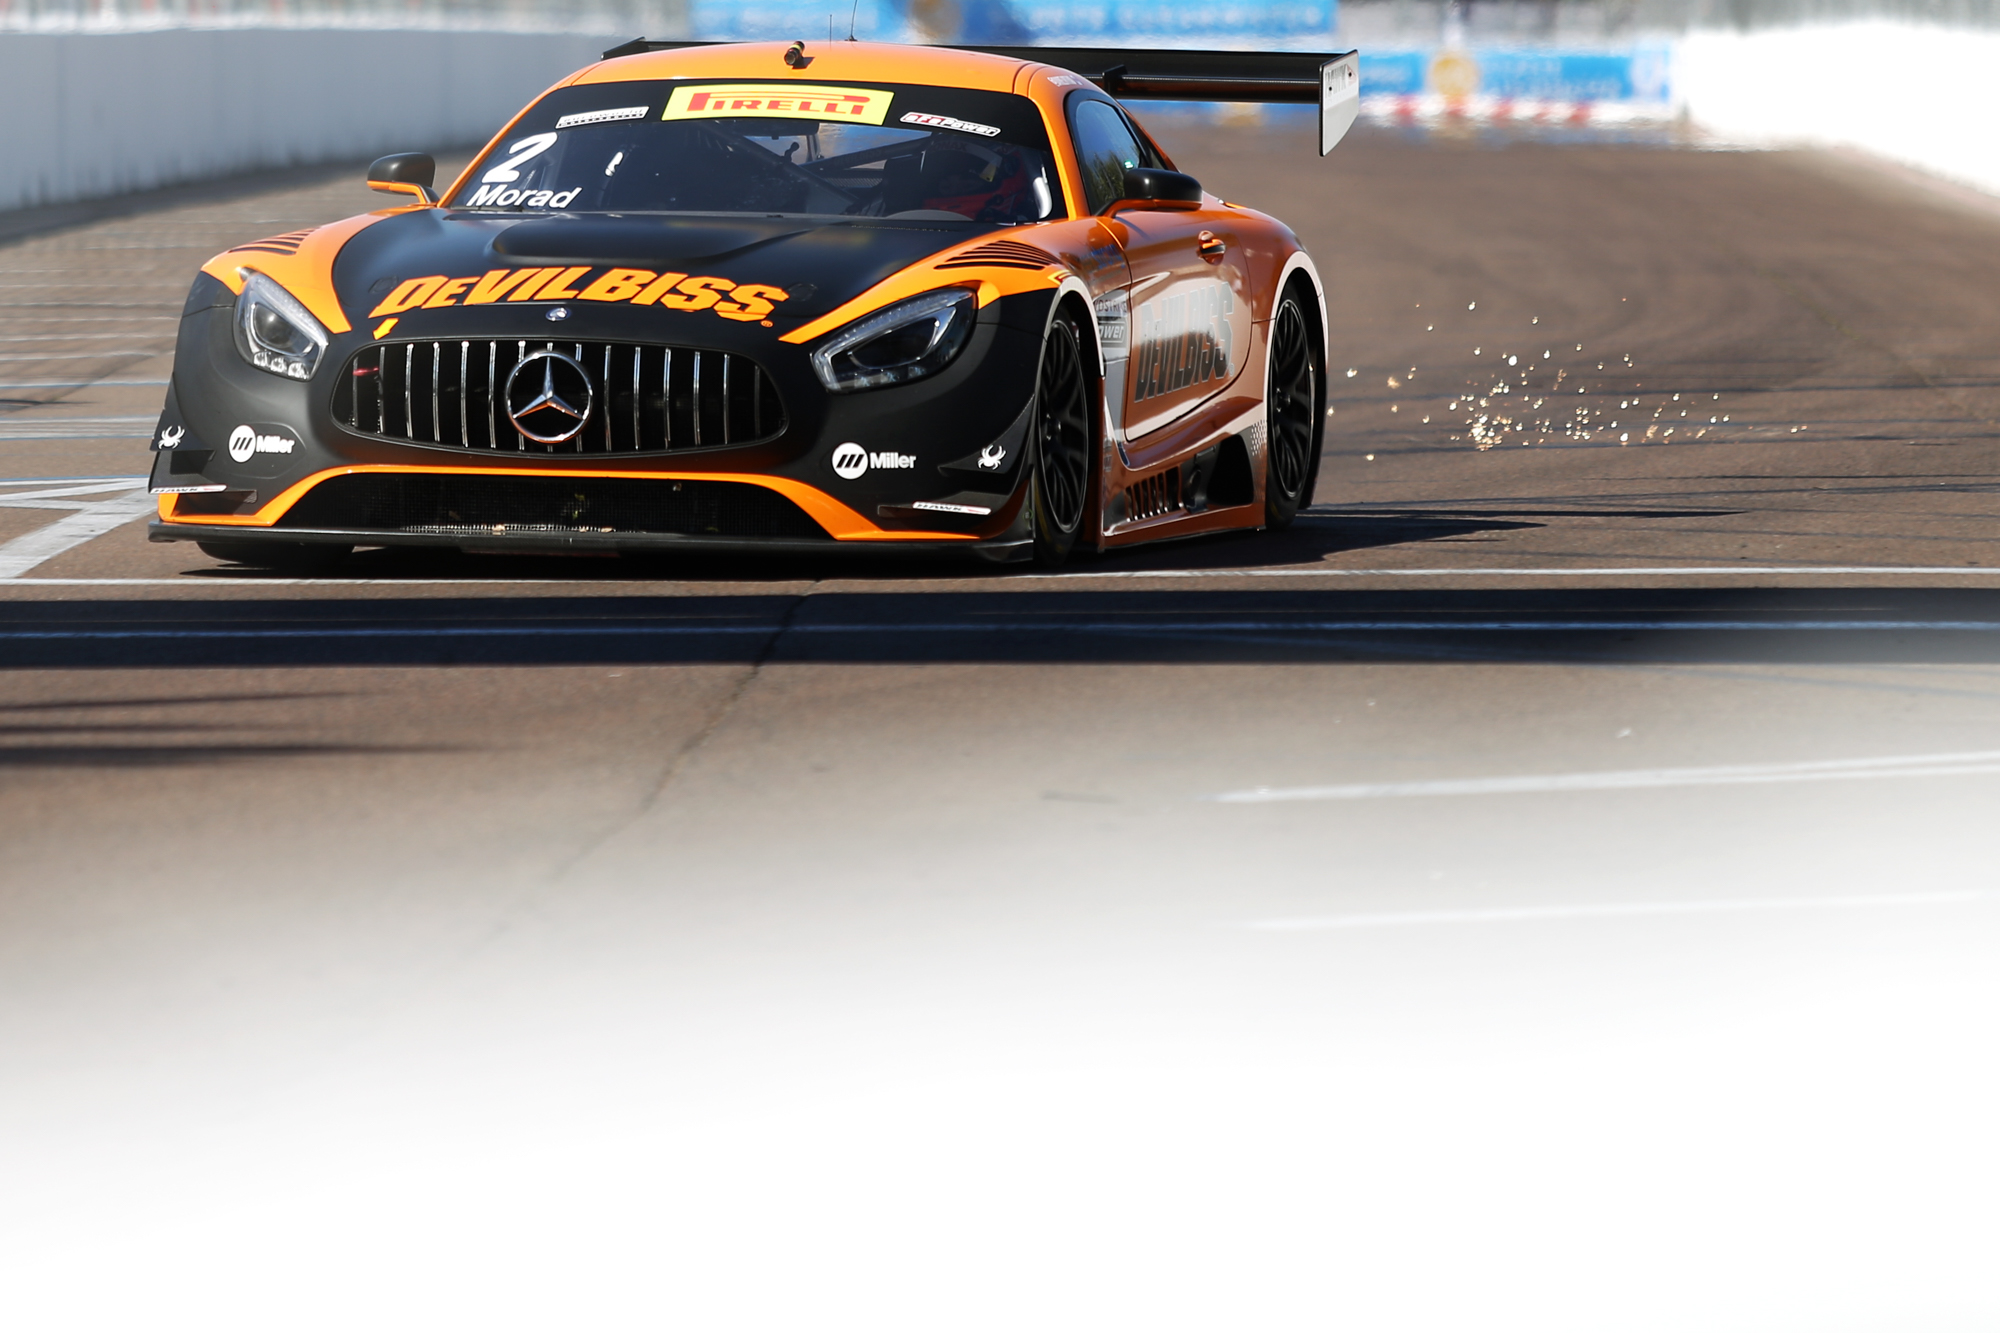 #2 Morad rumbles into turn 11 during Pirelli World Challenge practice./ANDREW J. KRAMER